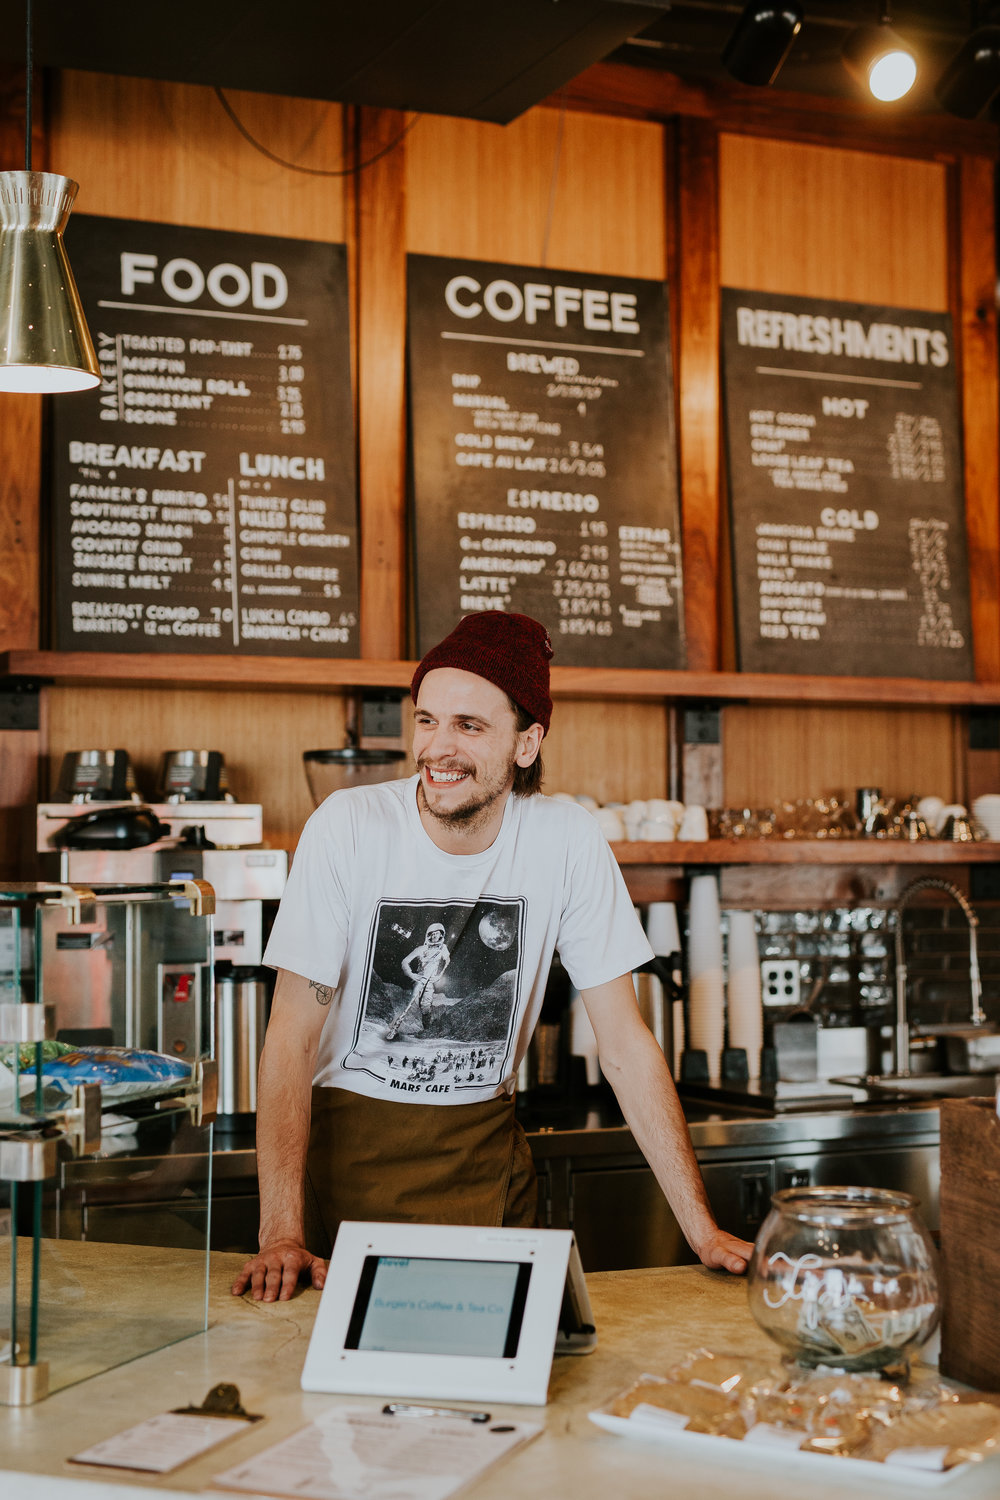 Join Our Team - Working in our shops is extremely fun and truly feels like you're part of a family. If you've ever wanted to become a barista and further your knowledge in coffee, we are always taking applications. Aquire applications at any of our locations.